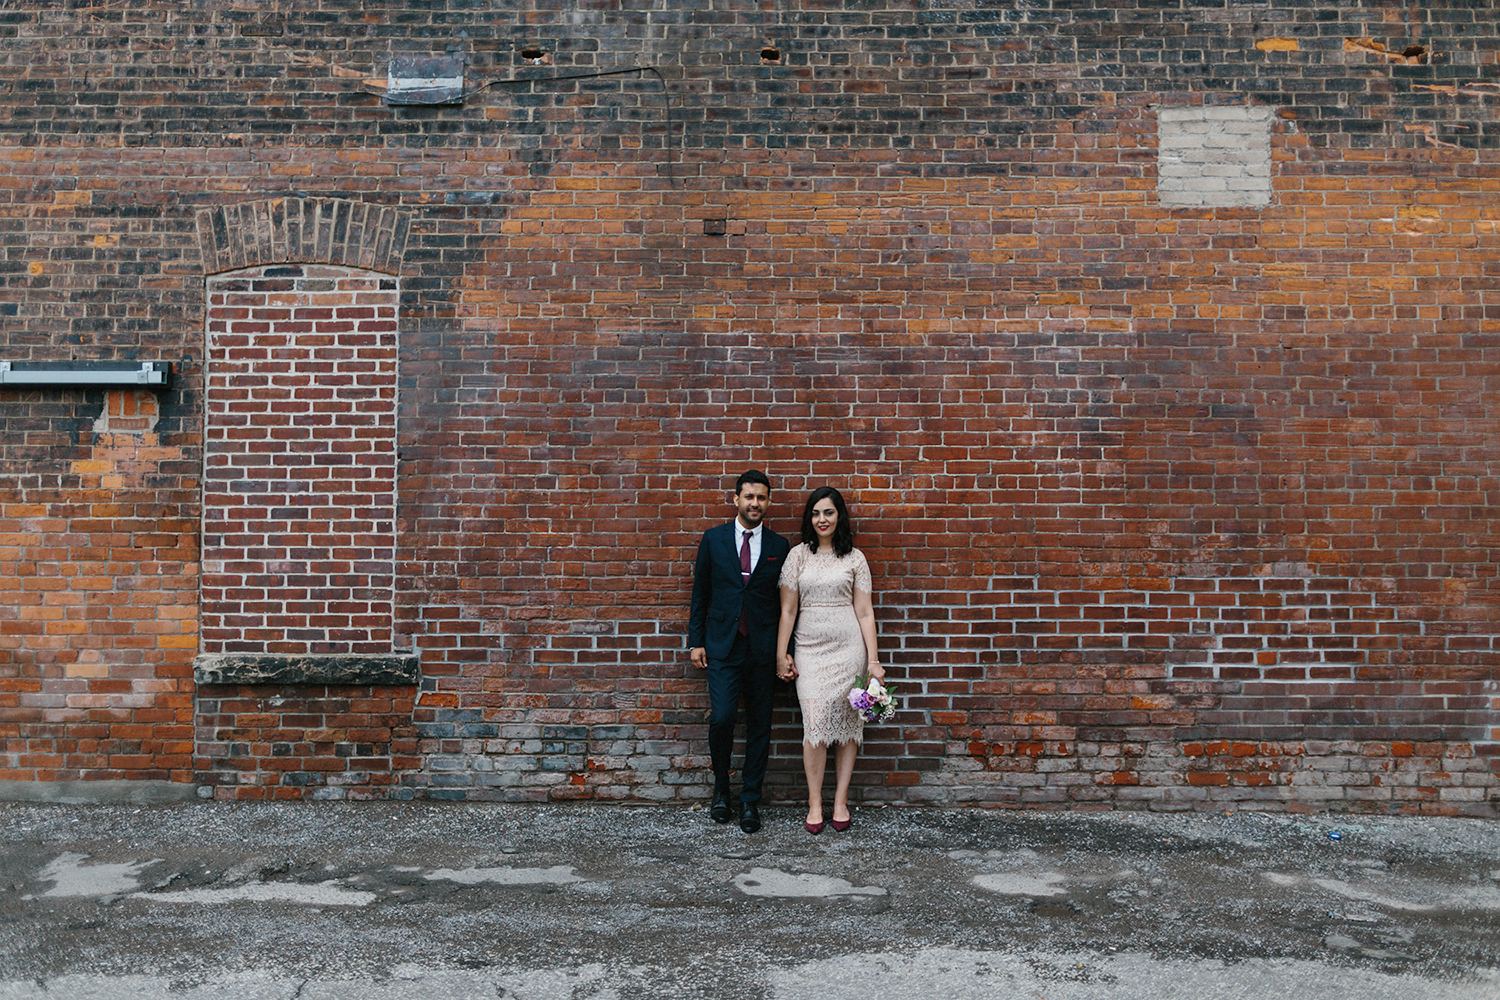 Best-Wedding-Photographers-in-Toronto-Downtown-Urban-Gladstone-Hotel-Venue-Inspiration-Top-Venues-in-Toronto-boutique-hotel-candid-documentary-brunch-wedding-couples-portraits-old-toronto-brick-art-badass.jpg